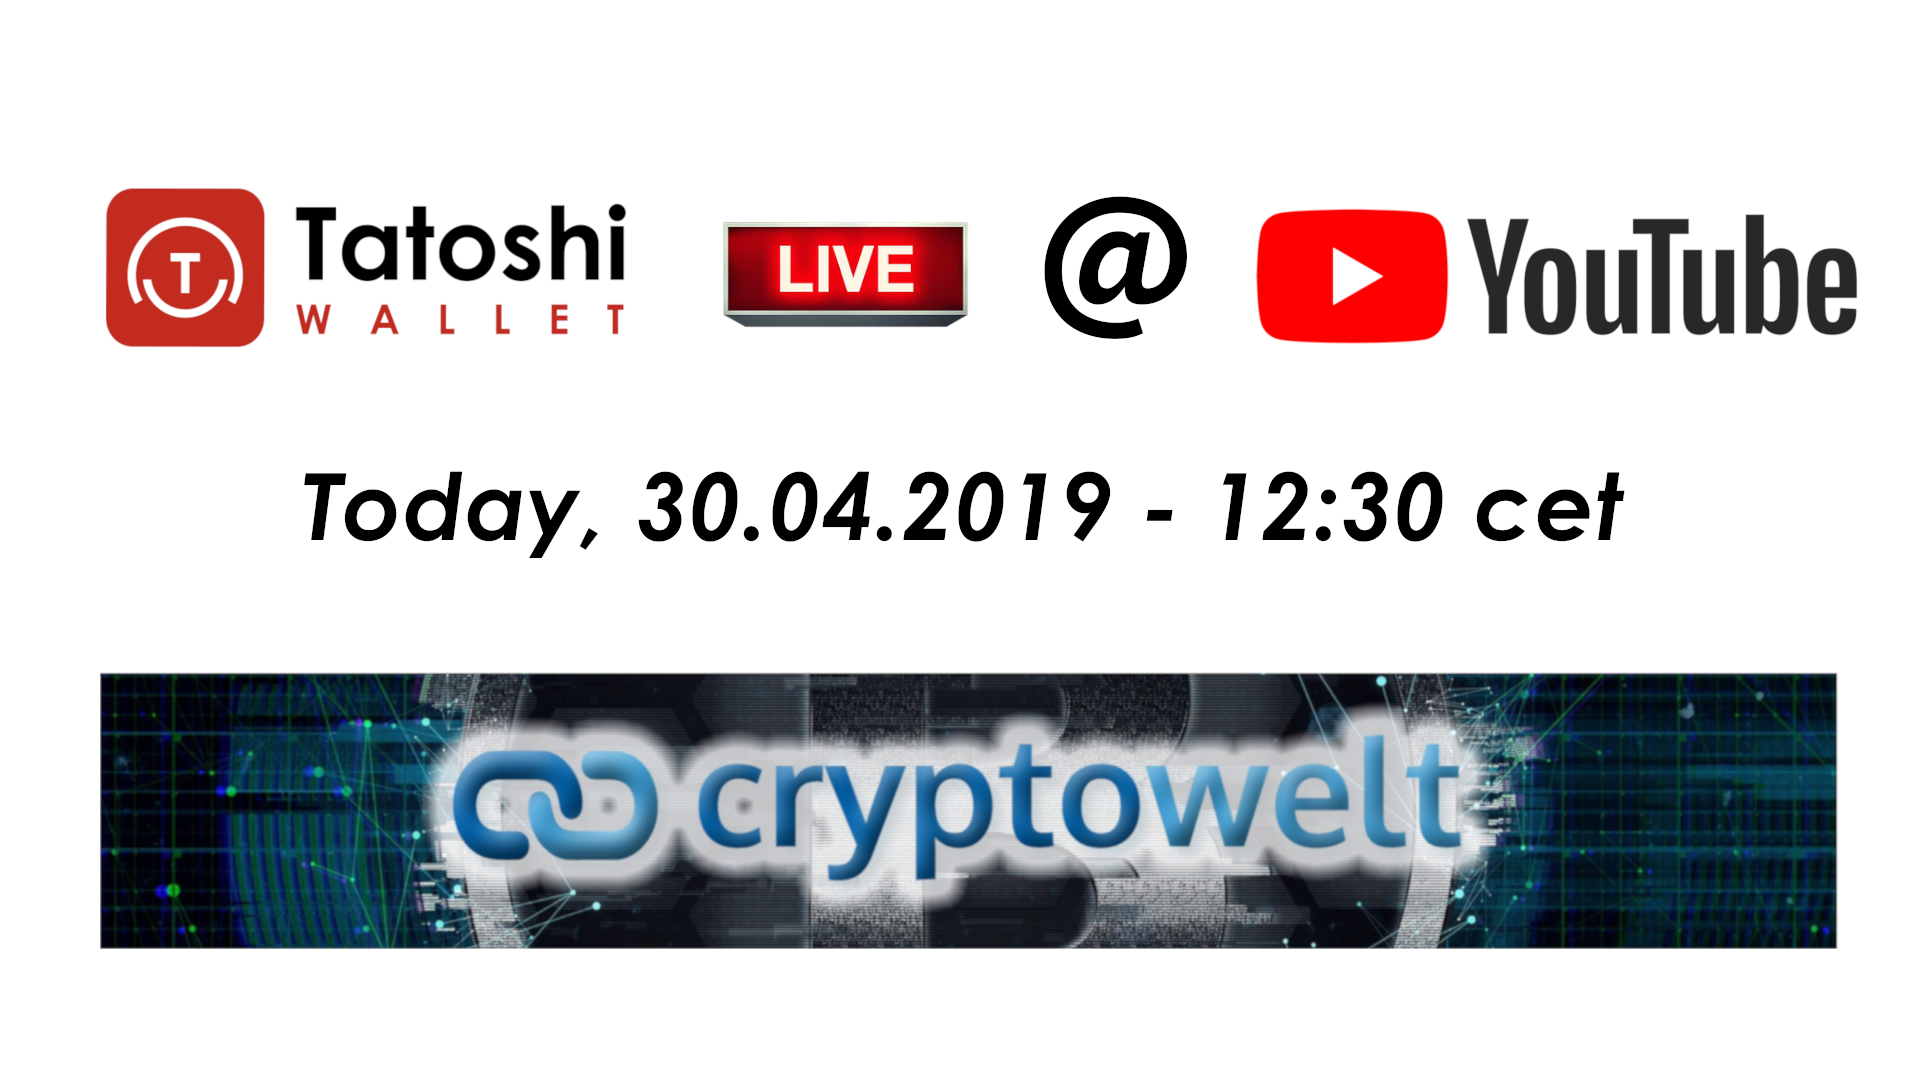 Tatoshi wallet live at cryptowelt youtube channel